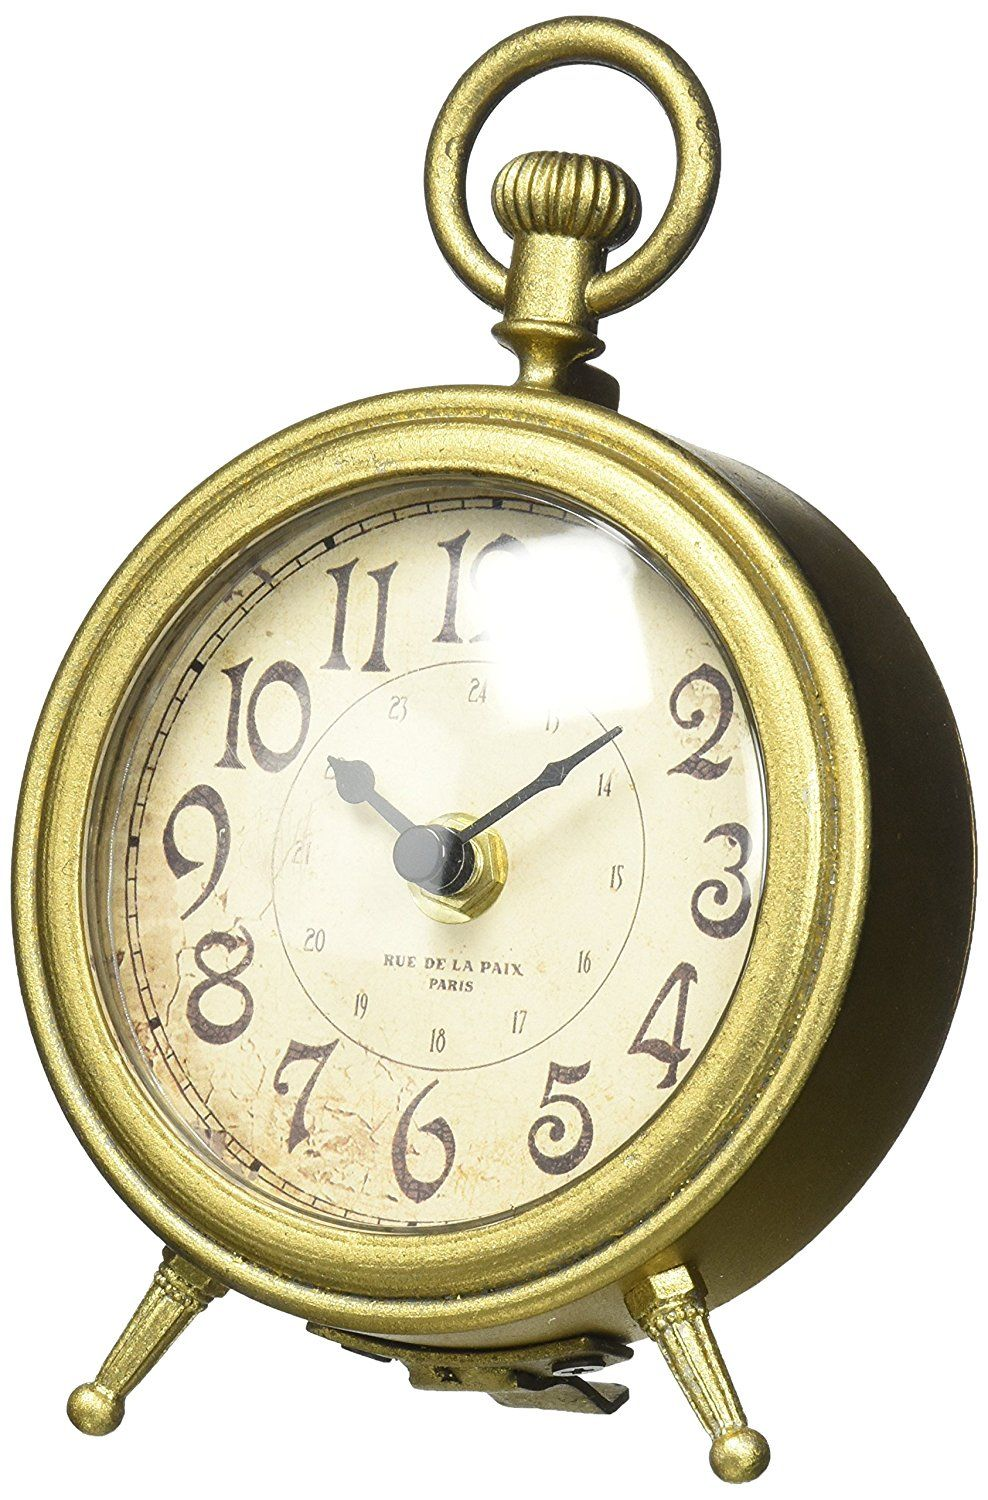 Nikky Home Metal Small Vintage Table Clock Decorative With Pocket